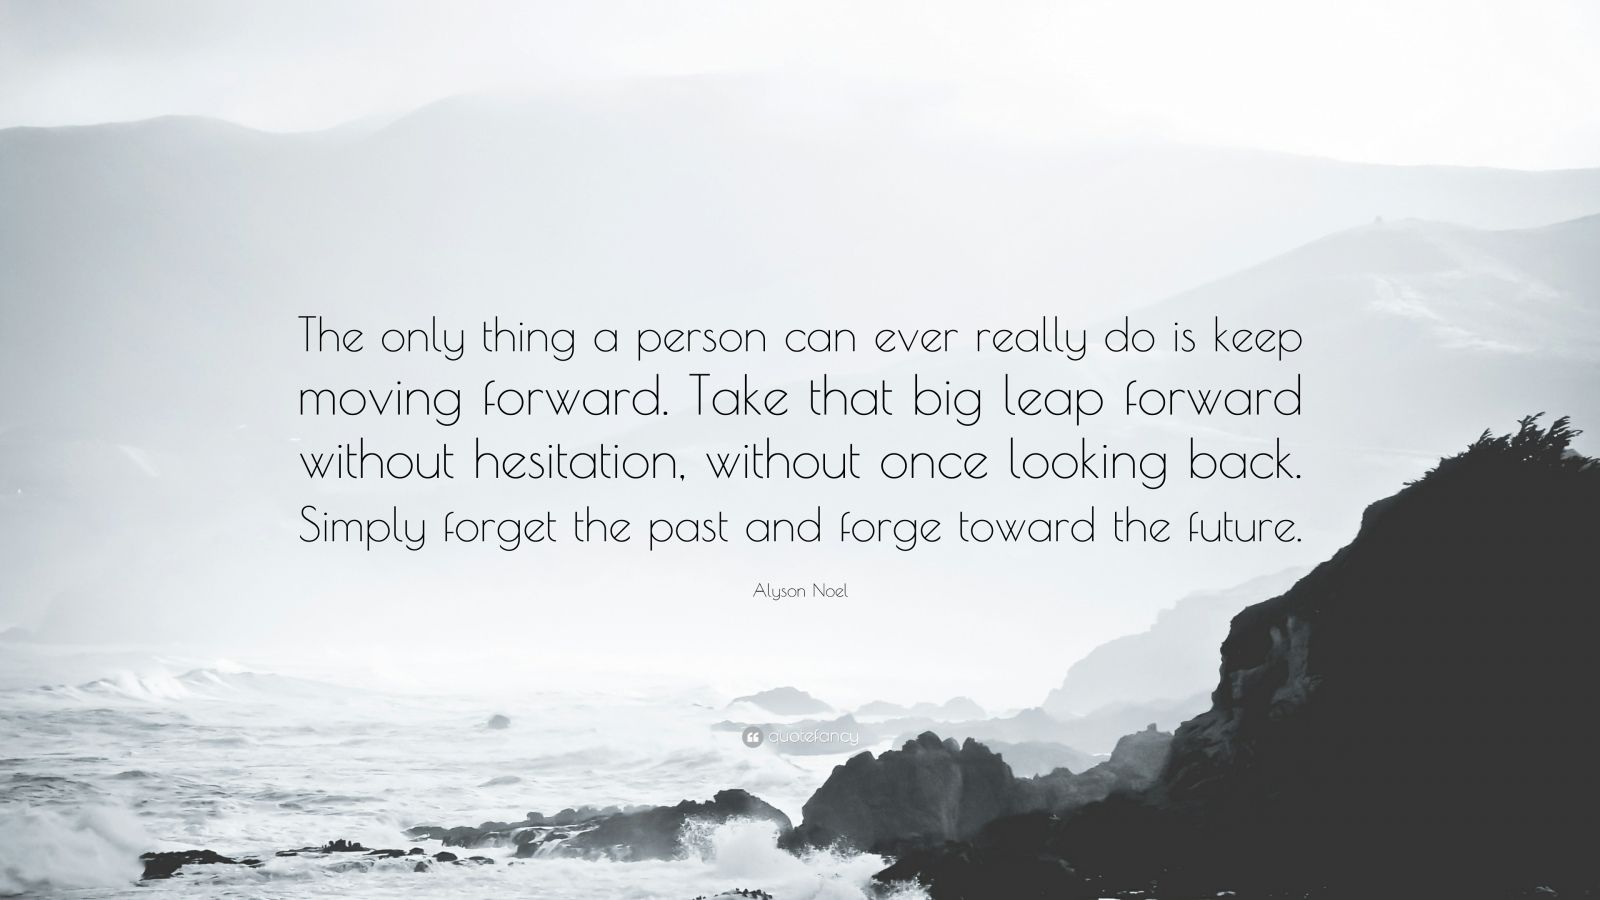 """Alyson Noel Quote: """"The only thing a person can ever really do is keep moving forward. Take that big leap forward without hesitation, without once looking back. Simply forget the past and forge toward the future."""""""